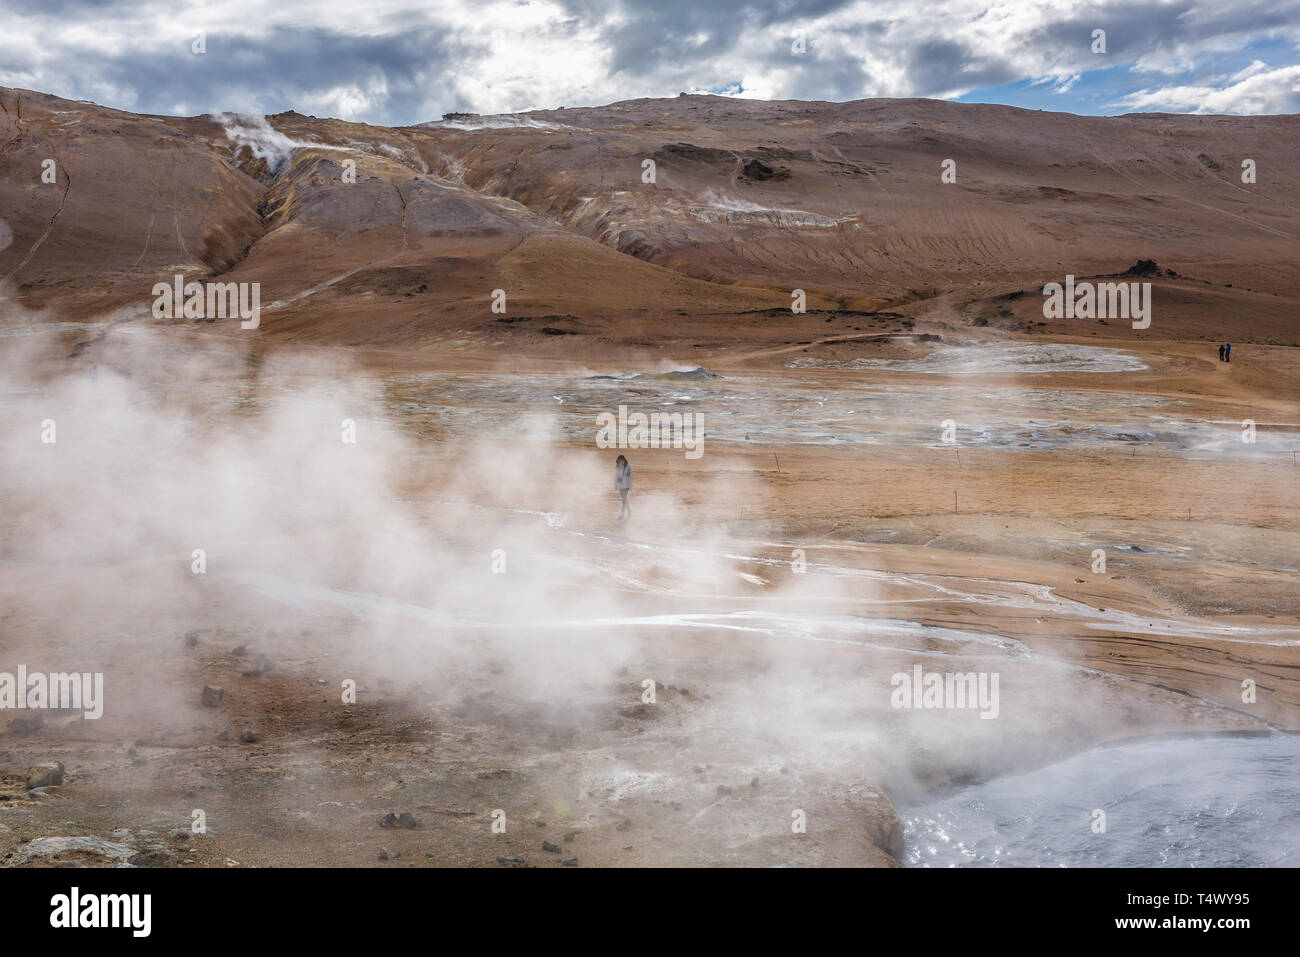 Namafjall mountain seen from Hverir boiling mud area also called Hverarond near Reykjahlid town in the north of Iceland Stock Photo